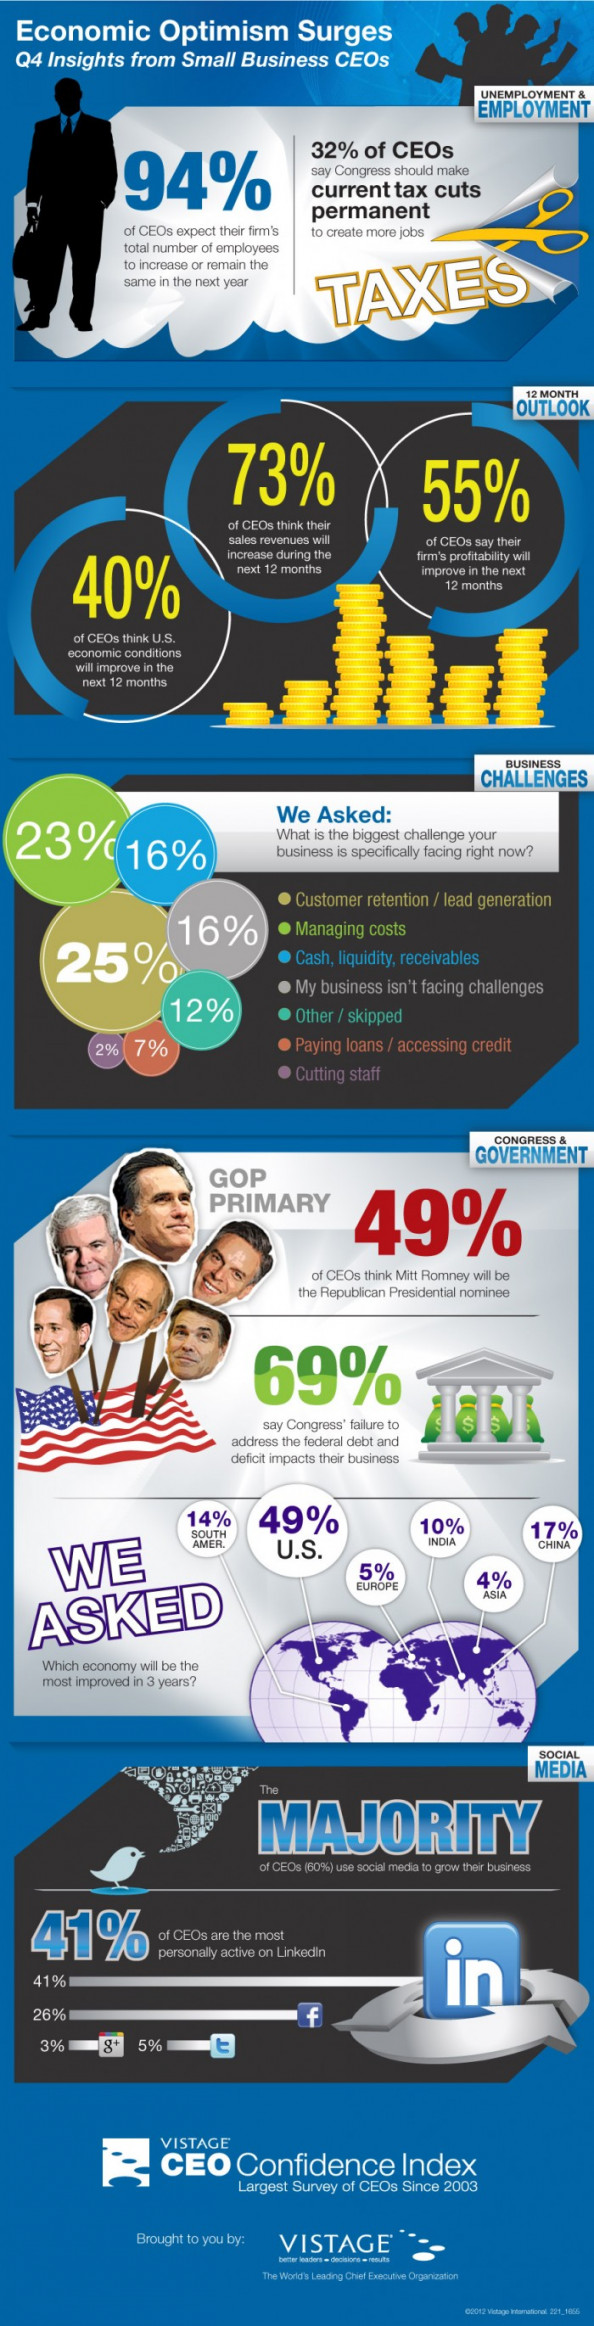 Economic Optimism Surges Infographic